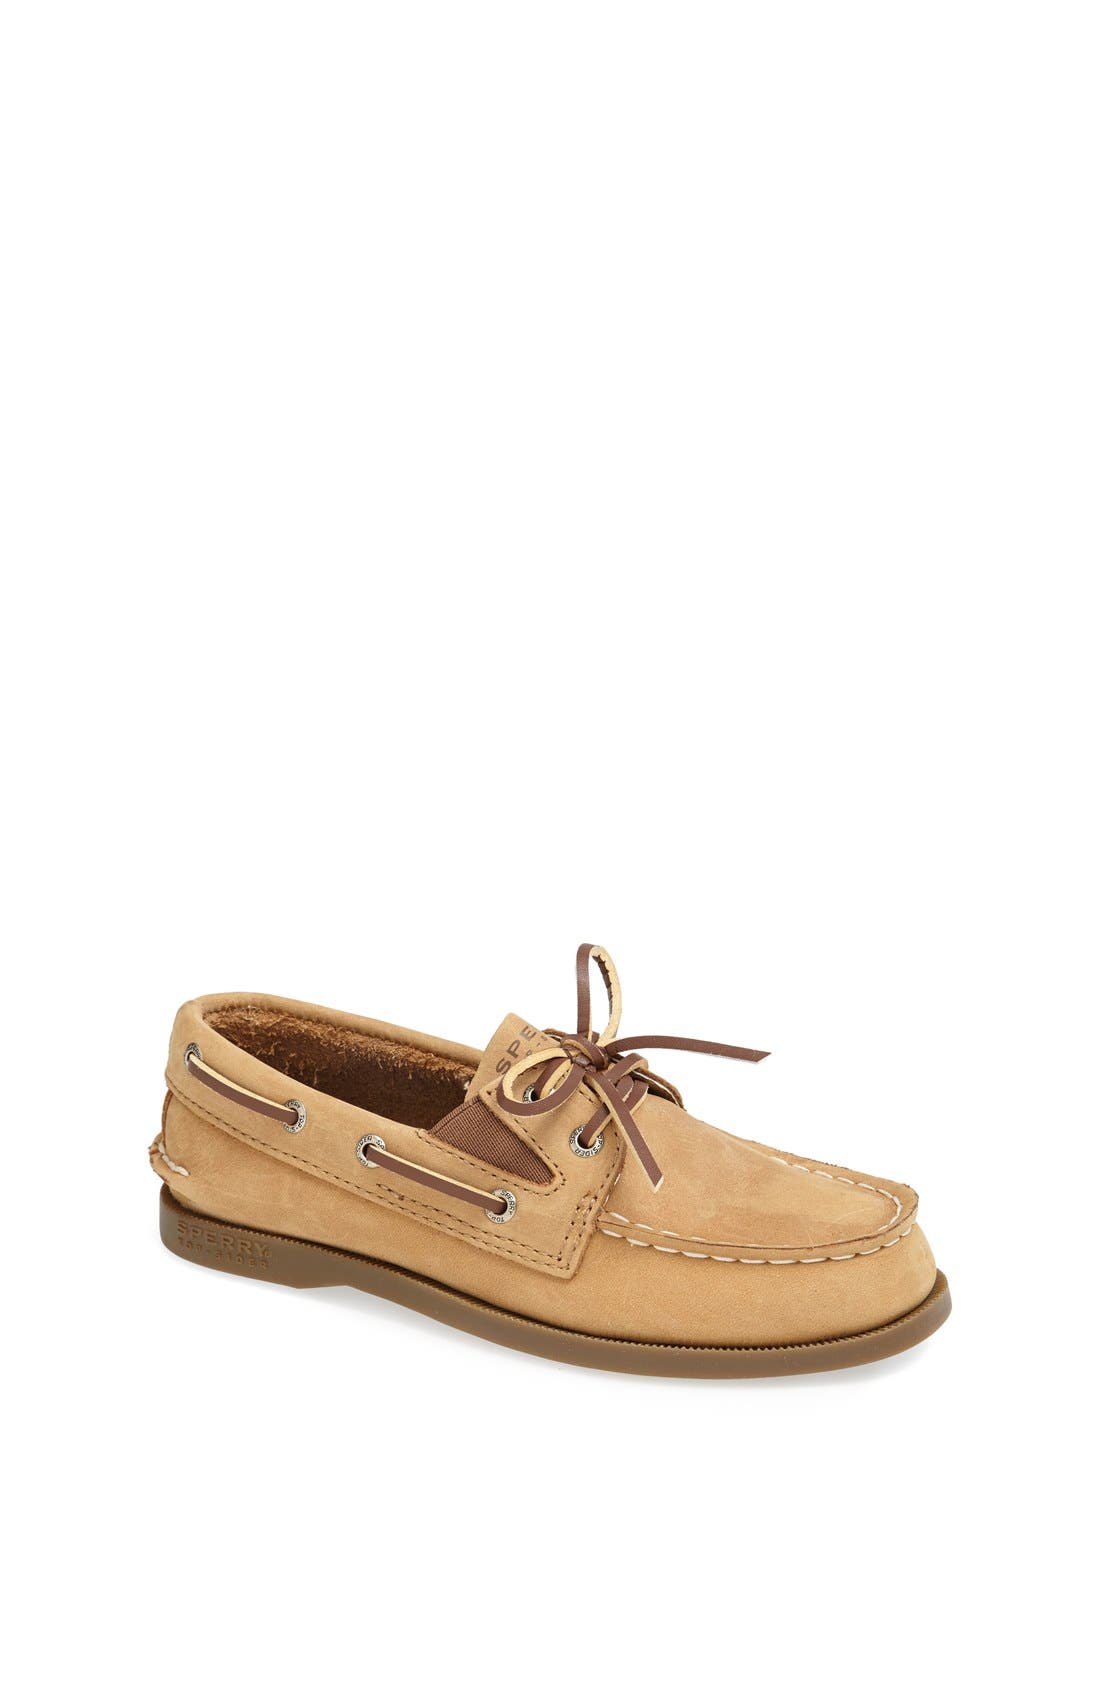 Sperry Kids 'Authentic Original' Boat Shoe (Walker, Toddler, Little Kid & Big Kid)